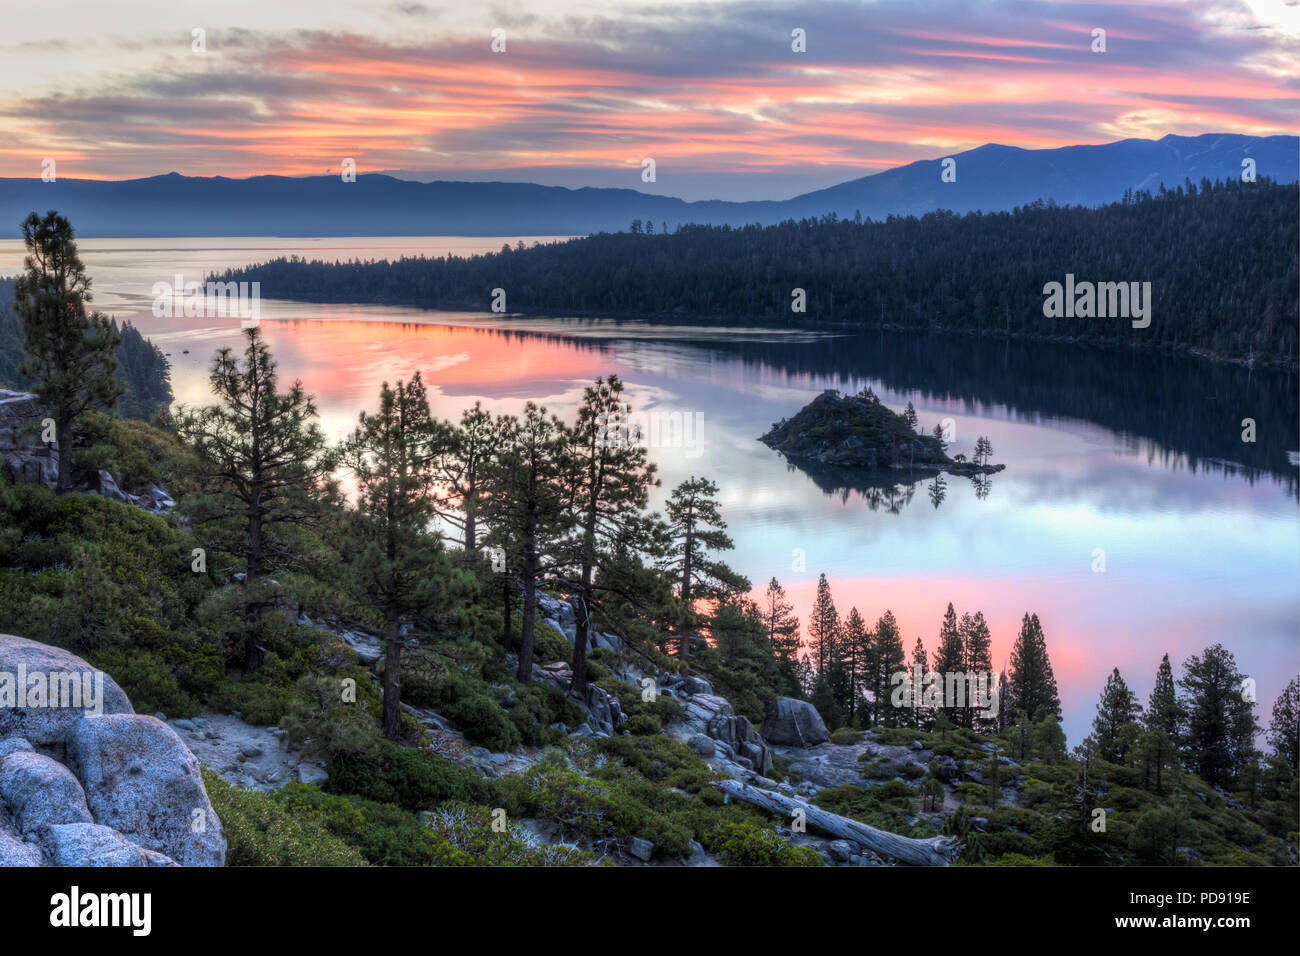 Colorful sunrise over Emerald Bay and Eagle Point off Lake Tahoe in California. Stock Photo